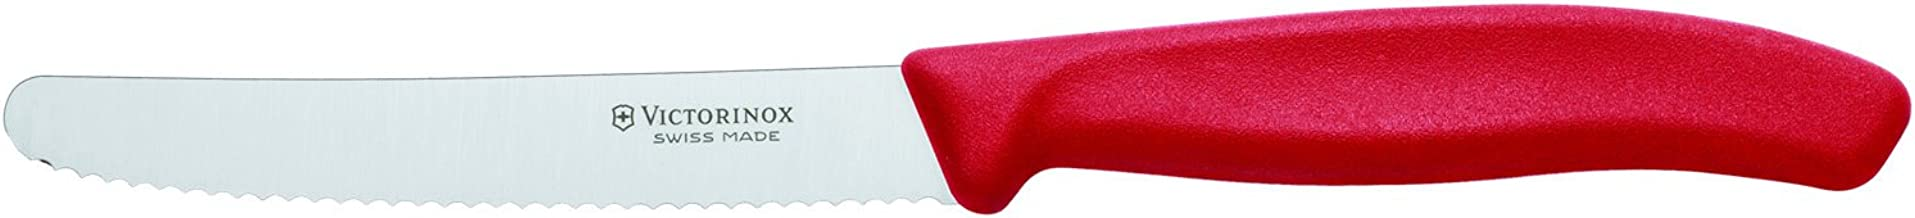 Victorinox 6.7831 Swiss Classic Steak&Tomato Knife, Red